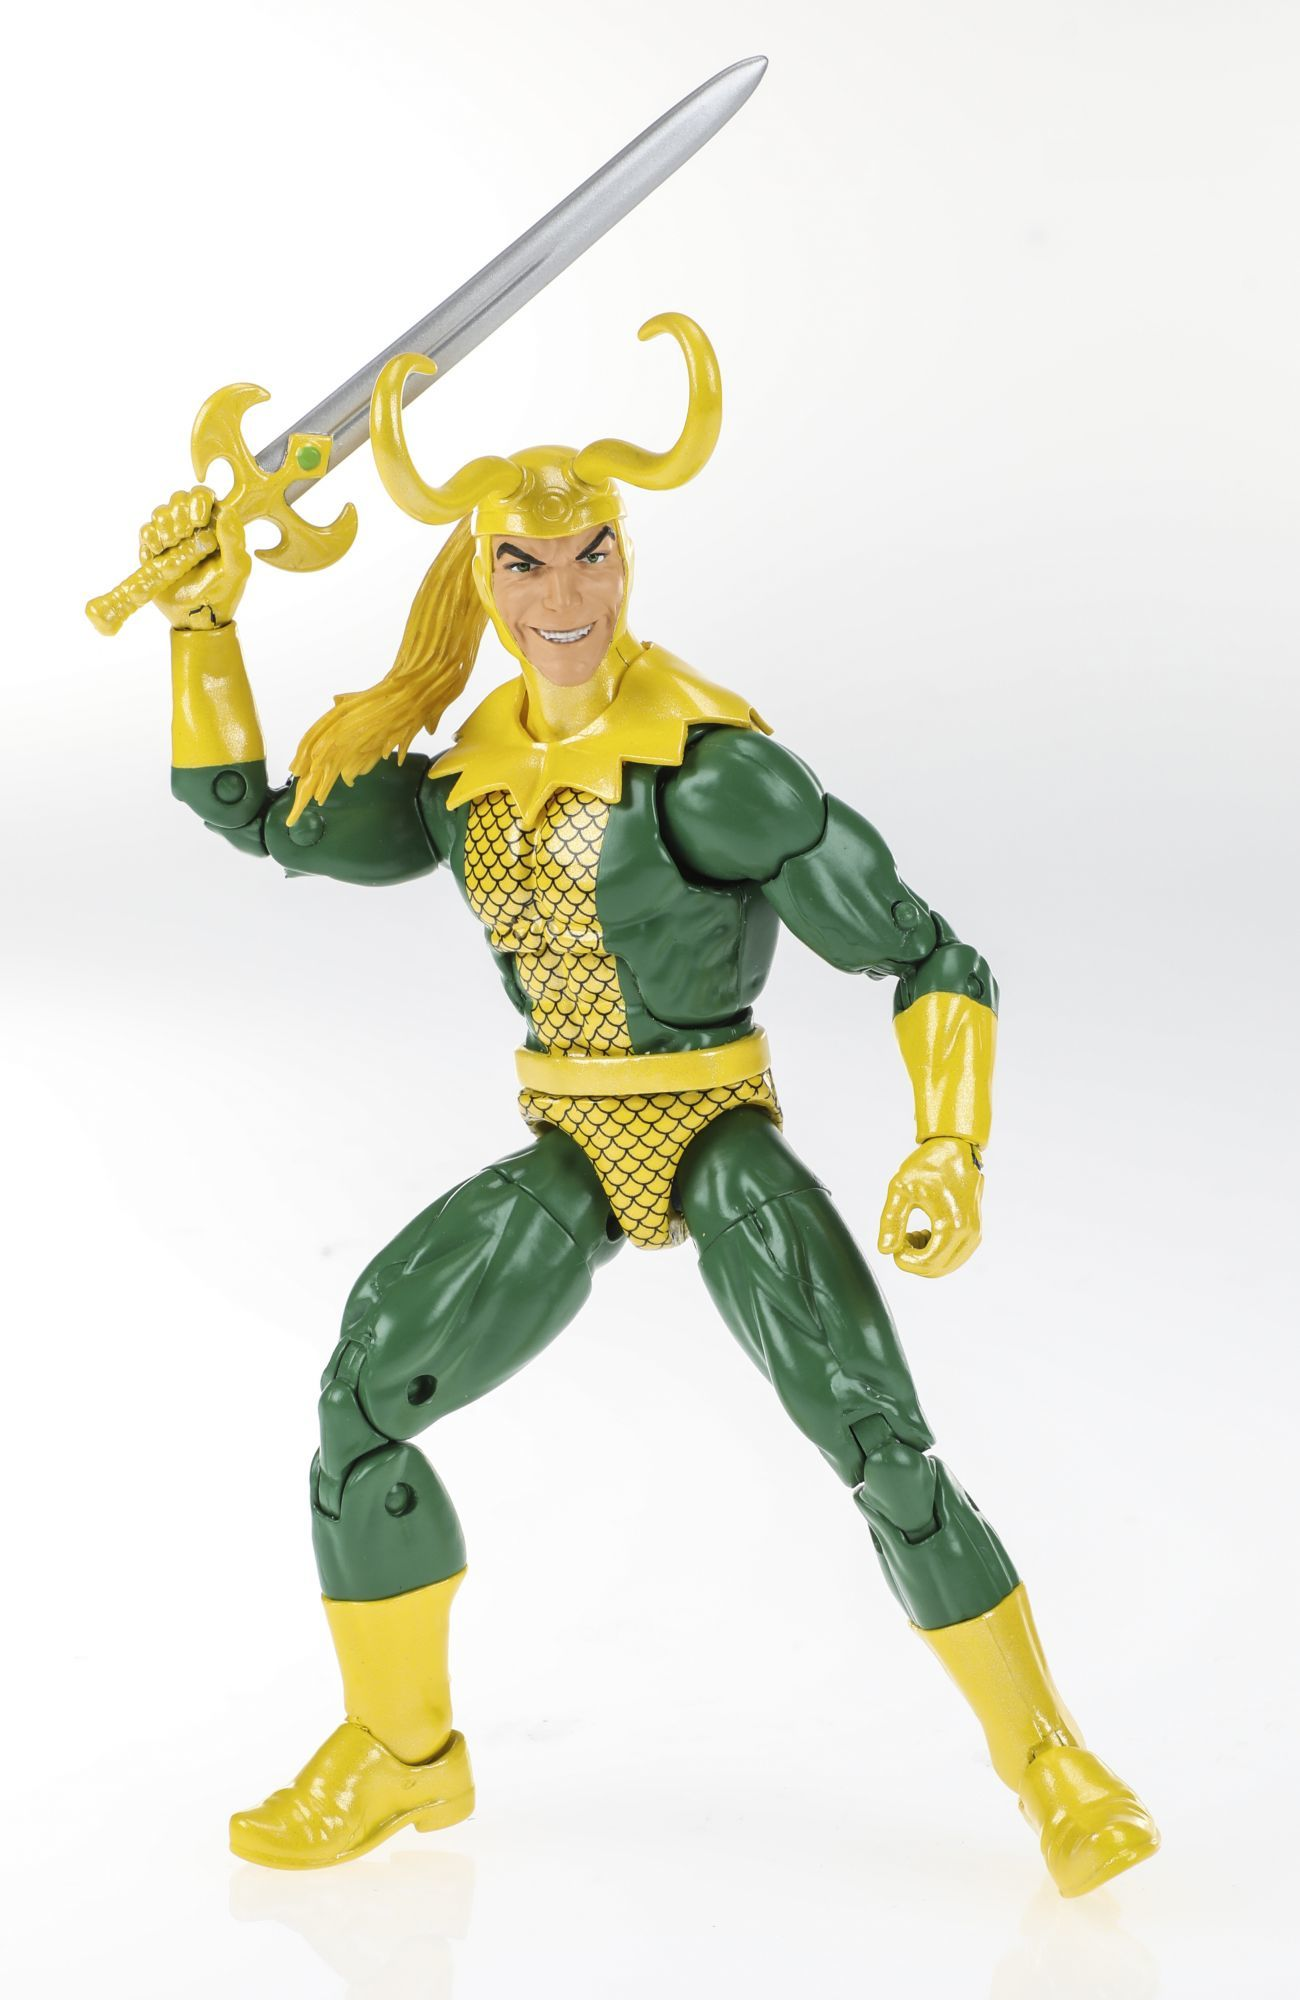 Marvel Legends Series 6-inch Loki Figure (Avengers wave)